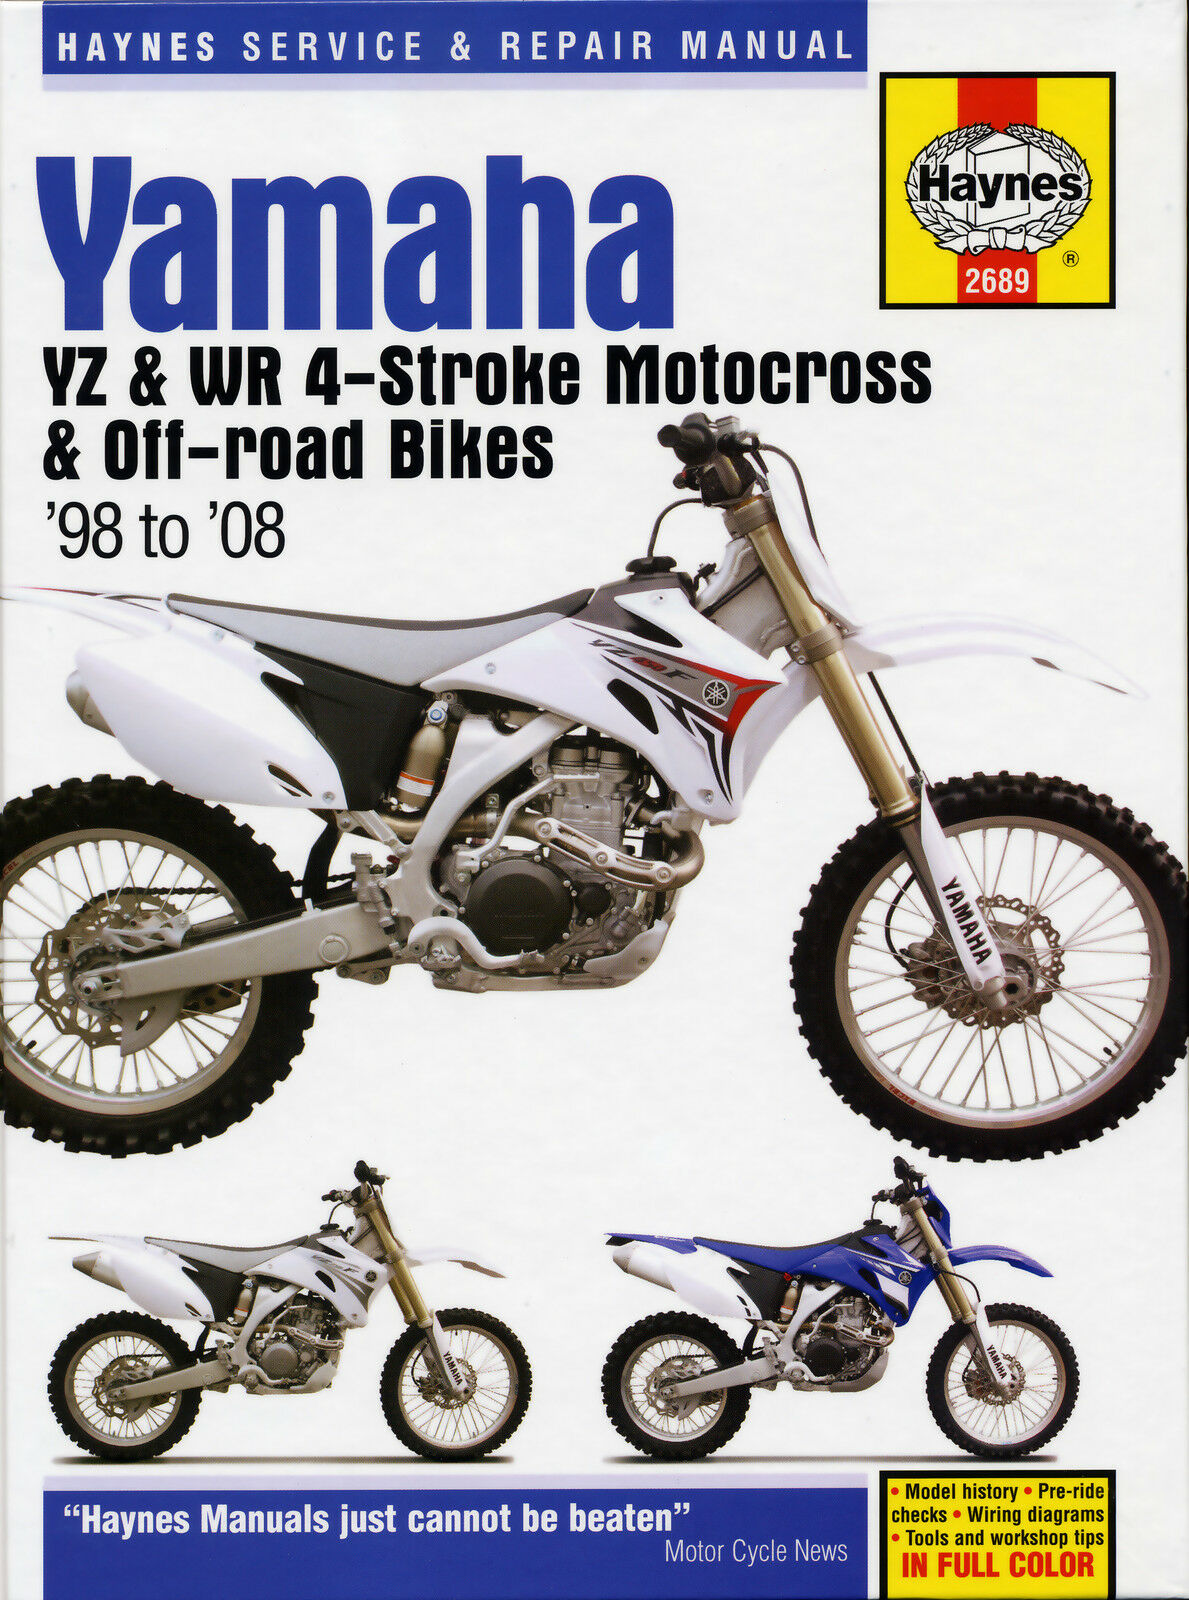 Haynes Manual 2689 - Yamaha YZ250F, WR250F, YZ400F, WR400F - service &  repair 1 of 1FREE Shipping See More